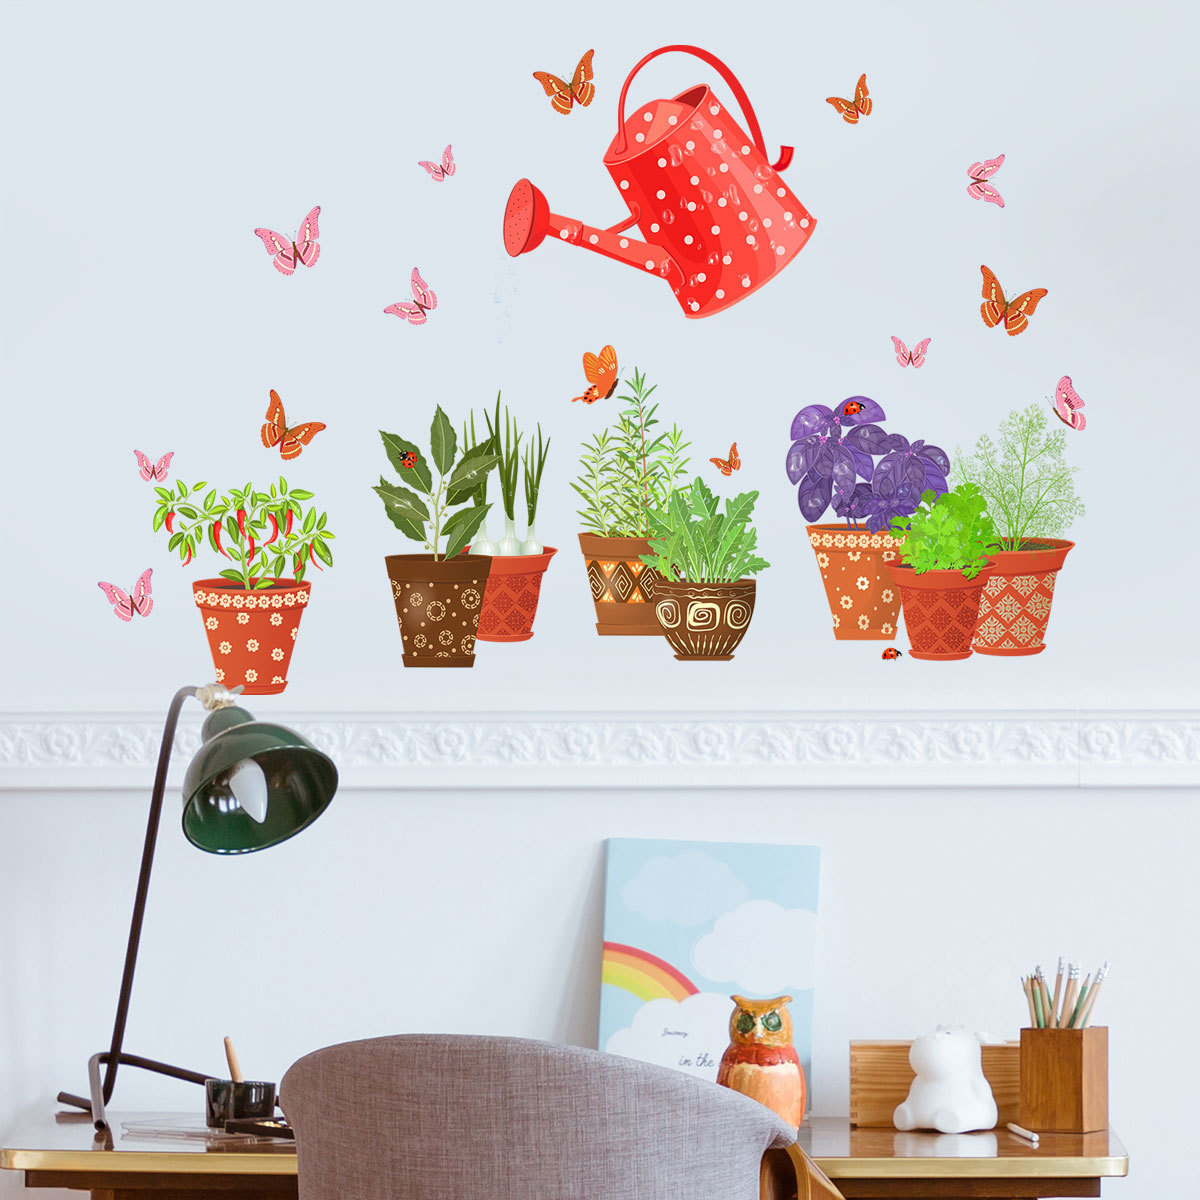 Green Plant Butterfly Watering Can Wall Stickers Living Room Bedroom Balcony Decorative Wall Stickers